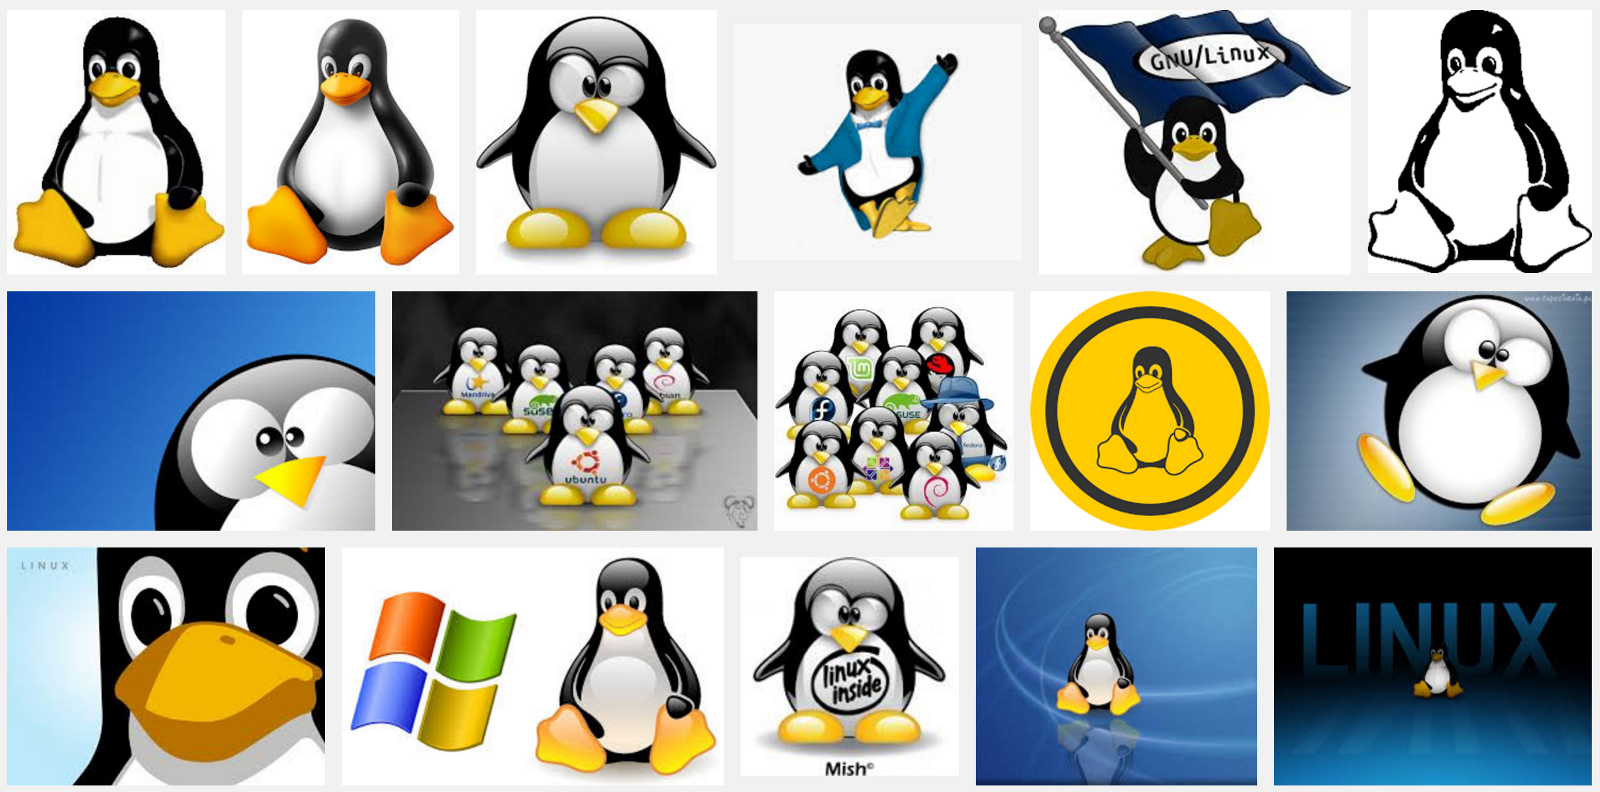 How Tux The Penguin Ruined It For Linux Piss Io